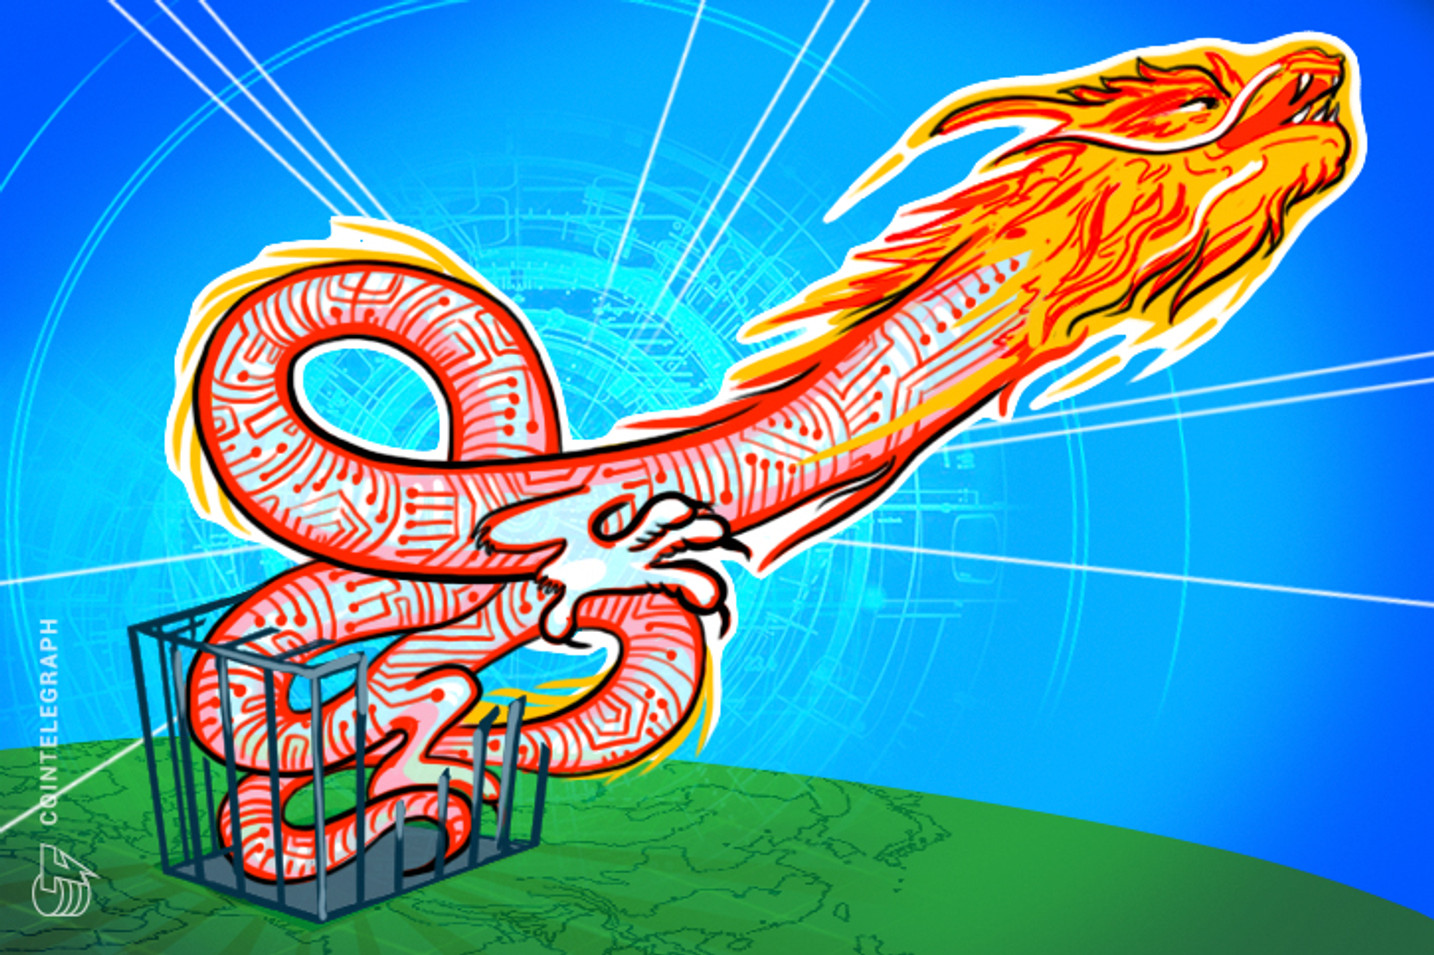 Despite Crackdown on Trading, Crypto and Blockchain in China Are Alive